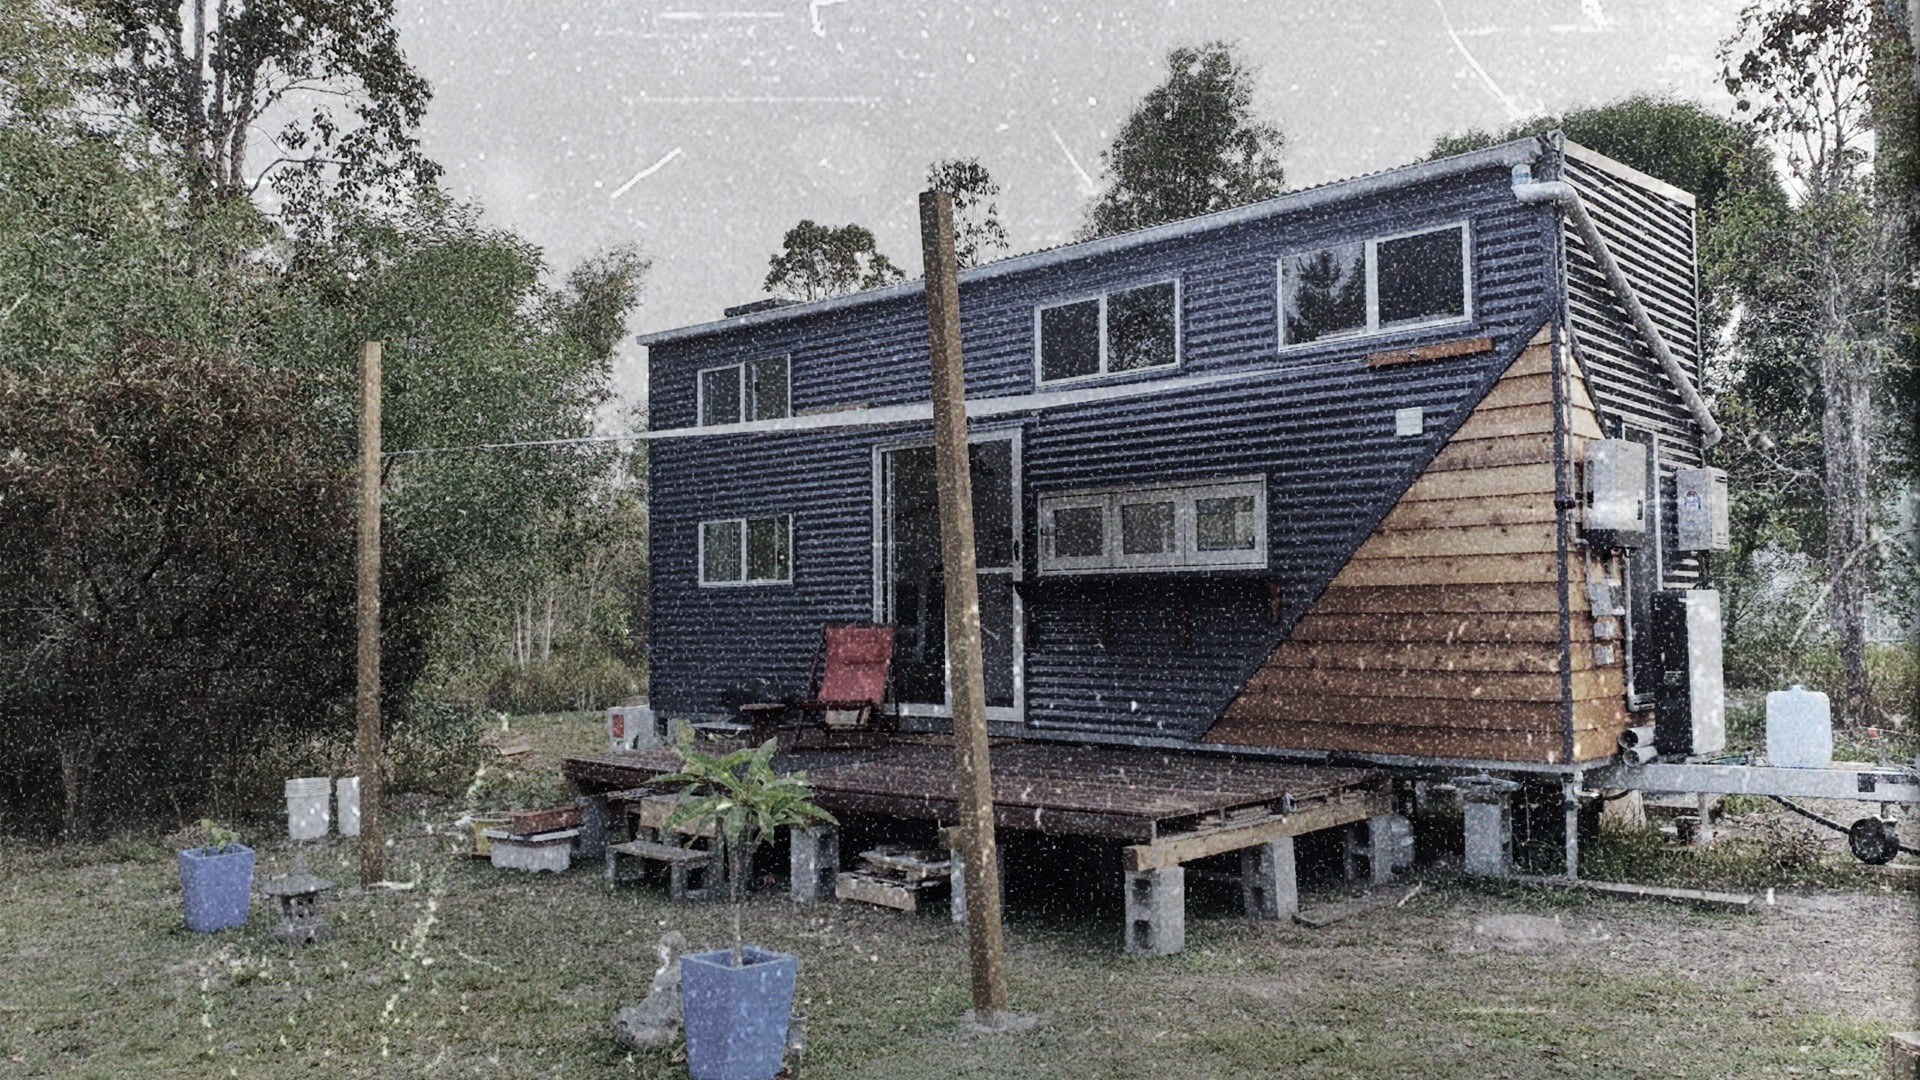 Mobile home, Building, Window, Plant, Tree, Sky, House, Wood, Cottage